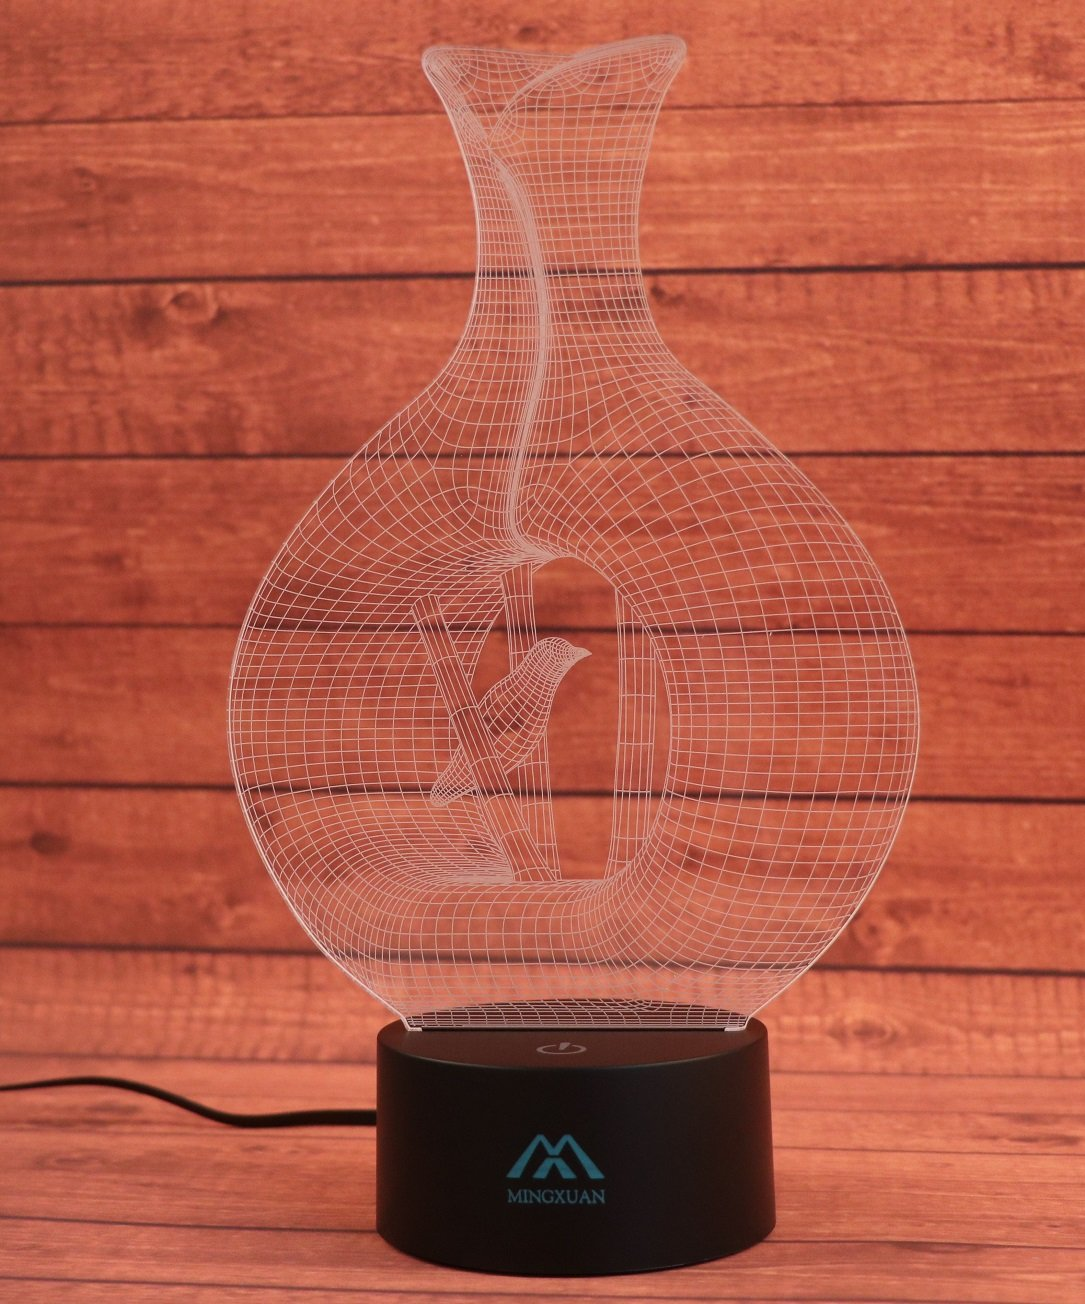 Vase Bird 3D Night Light 7 Color LED Touch Table Desk Lamps Energy Gl Vase With Wooden Base on wooden desk base, wooden lamp base, wooden cross base, wooden cabinet base, wooden bowl base, wooden sculpture base, wooden bed base, wooden statue base, wooden sofa base, wooden light base, wooden chair base, wooden ring base, wooden plaque base, wooden sign base, wooden plant base, wooden wreath base, wooden clock base, wooden table base, wooden tree base, butterfly base,